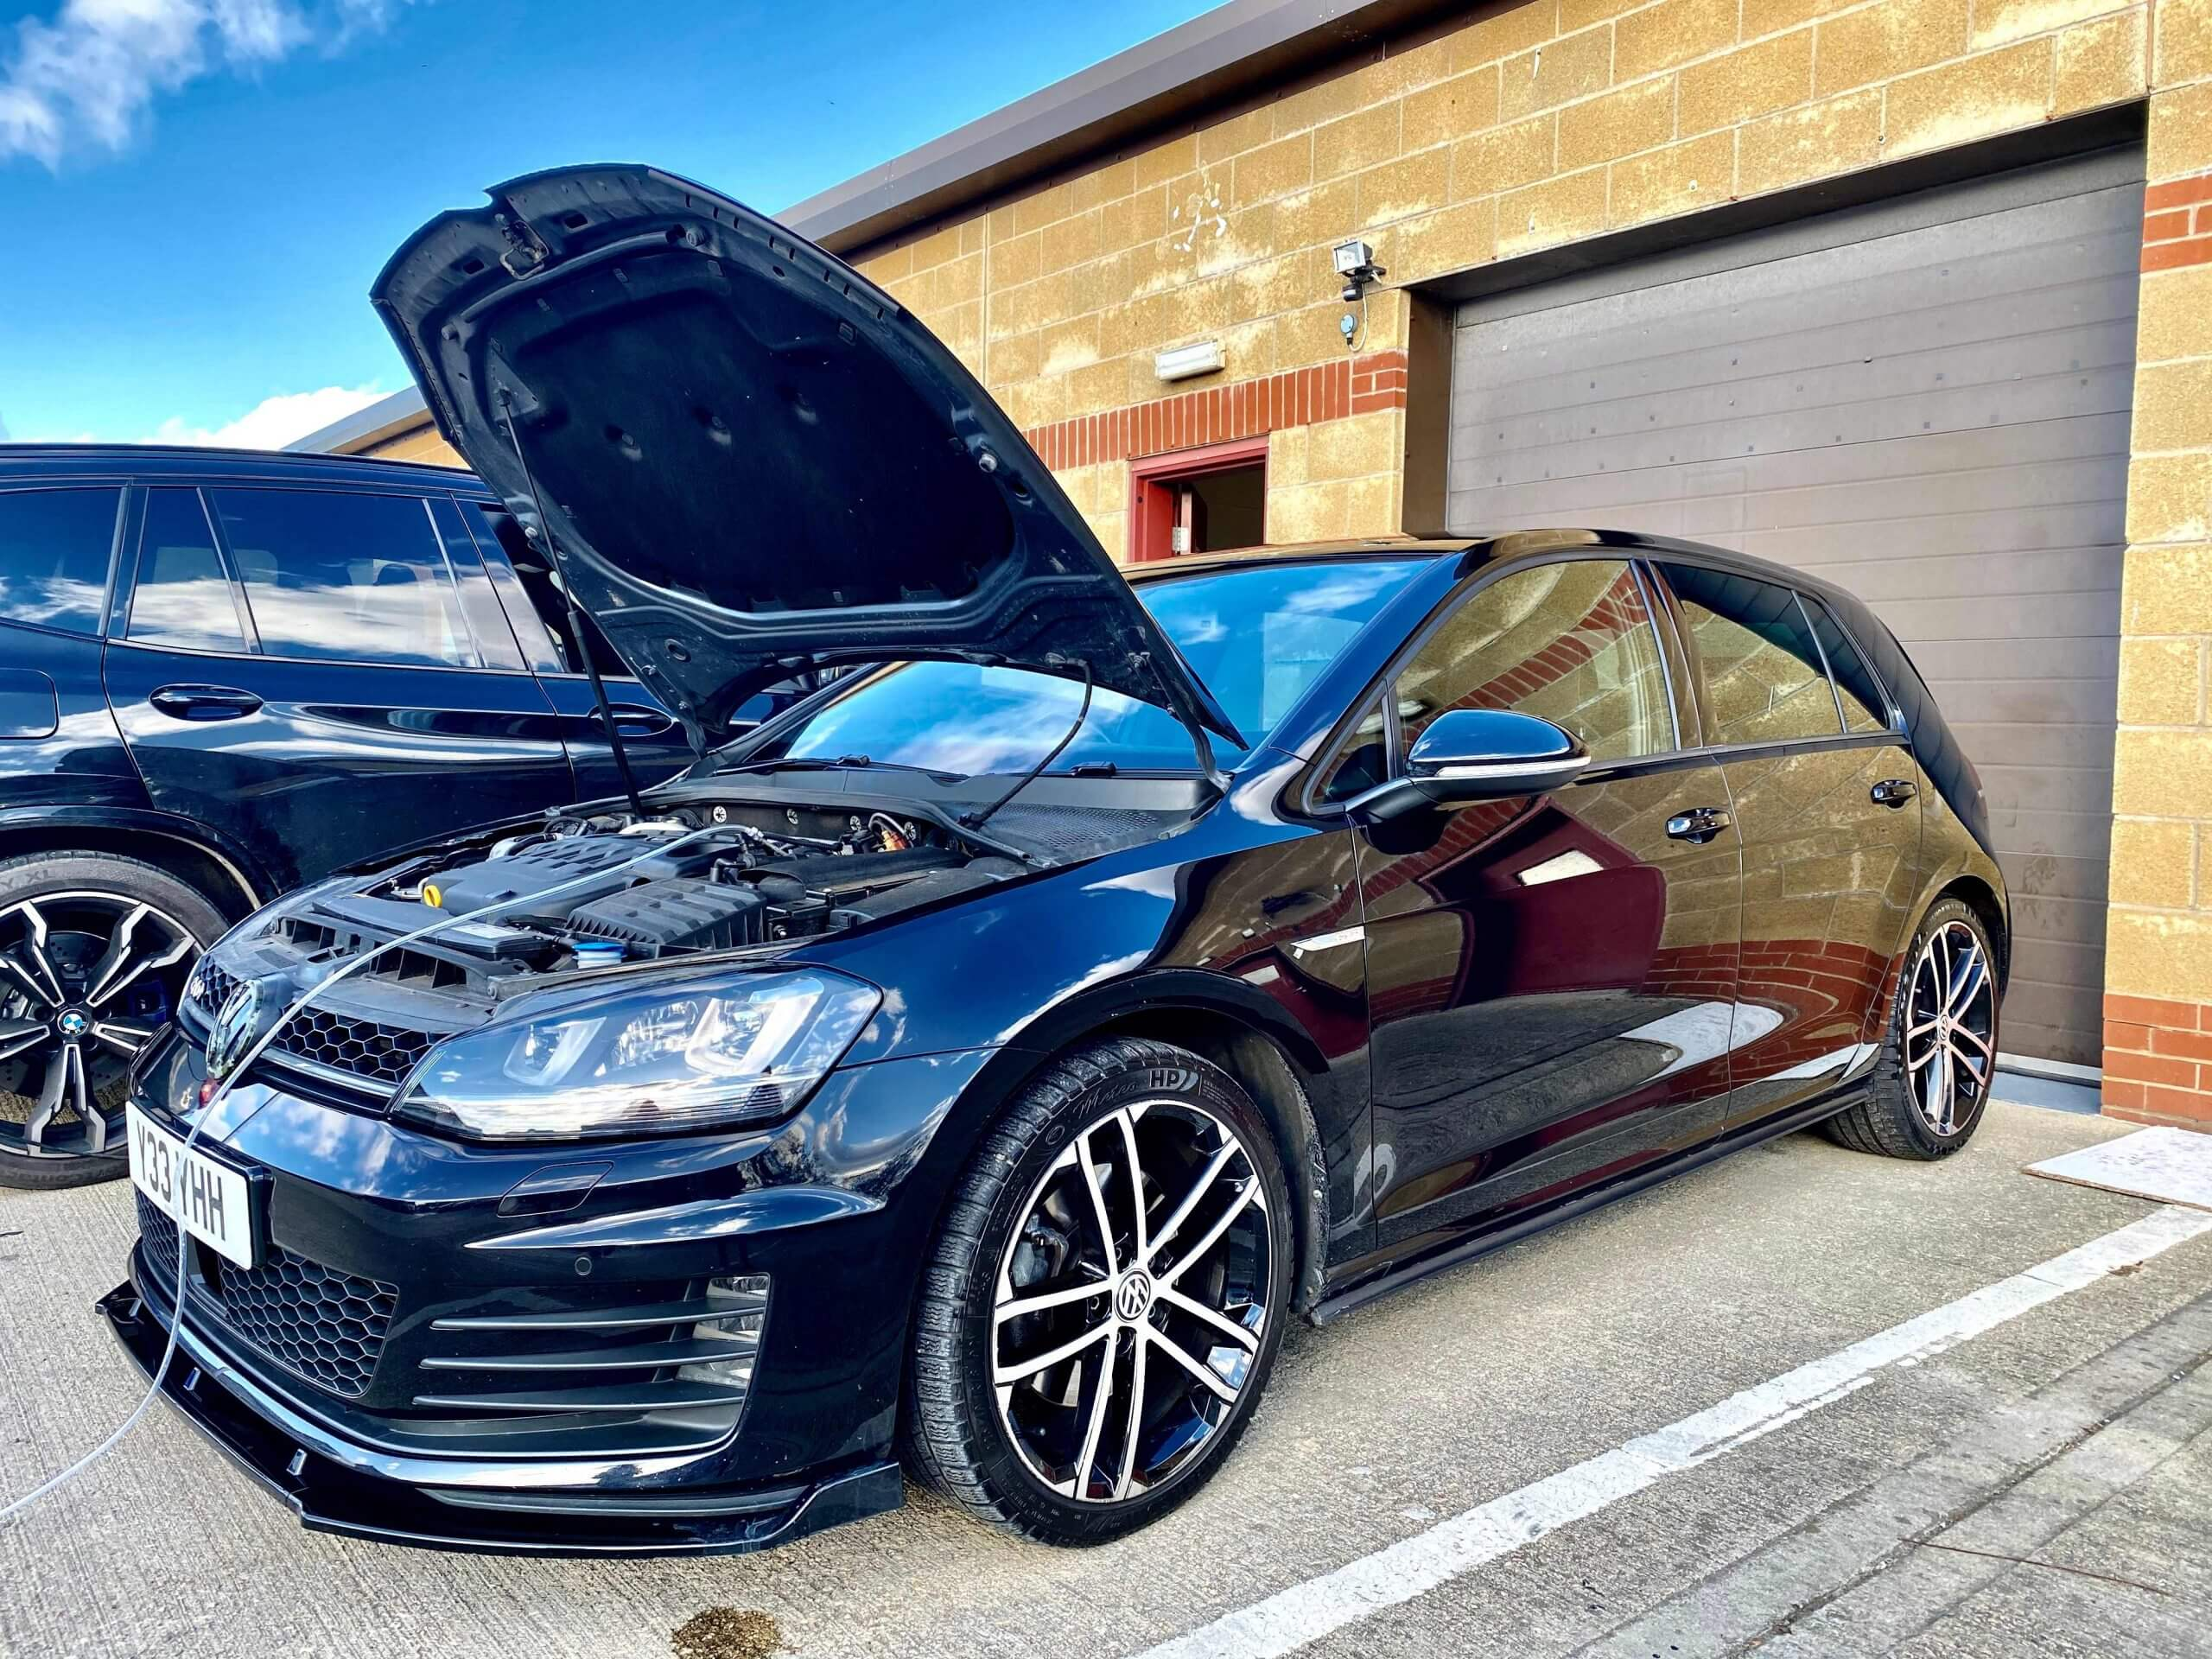 black Volkswagon having ODB remapped by top tuning